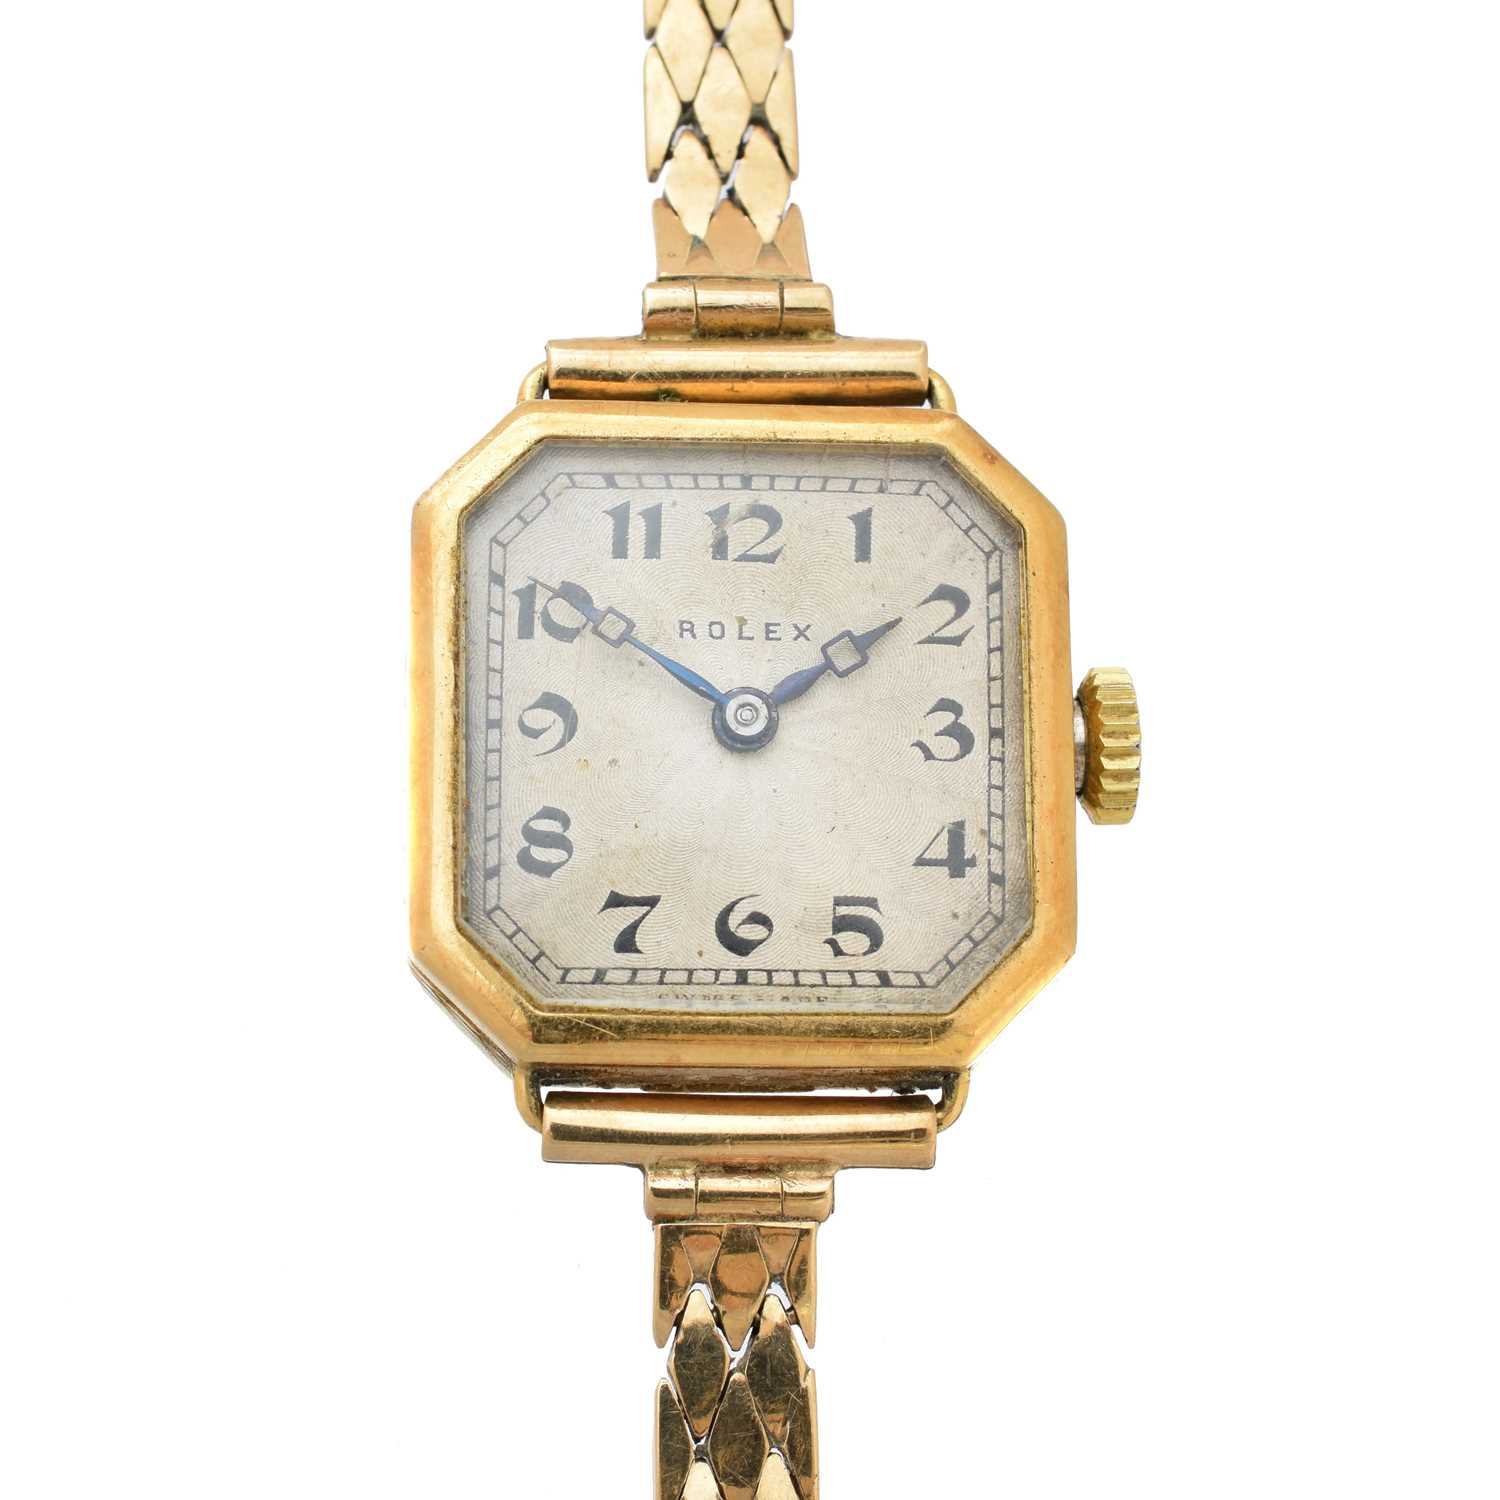 An early 20th century 18ct gold Rolex watch,